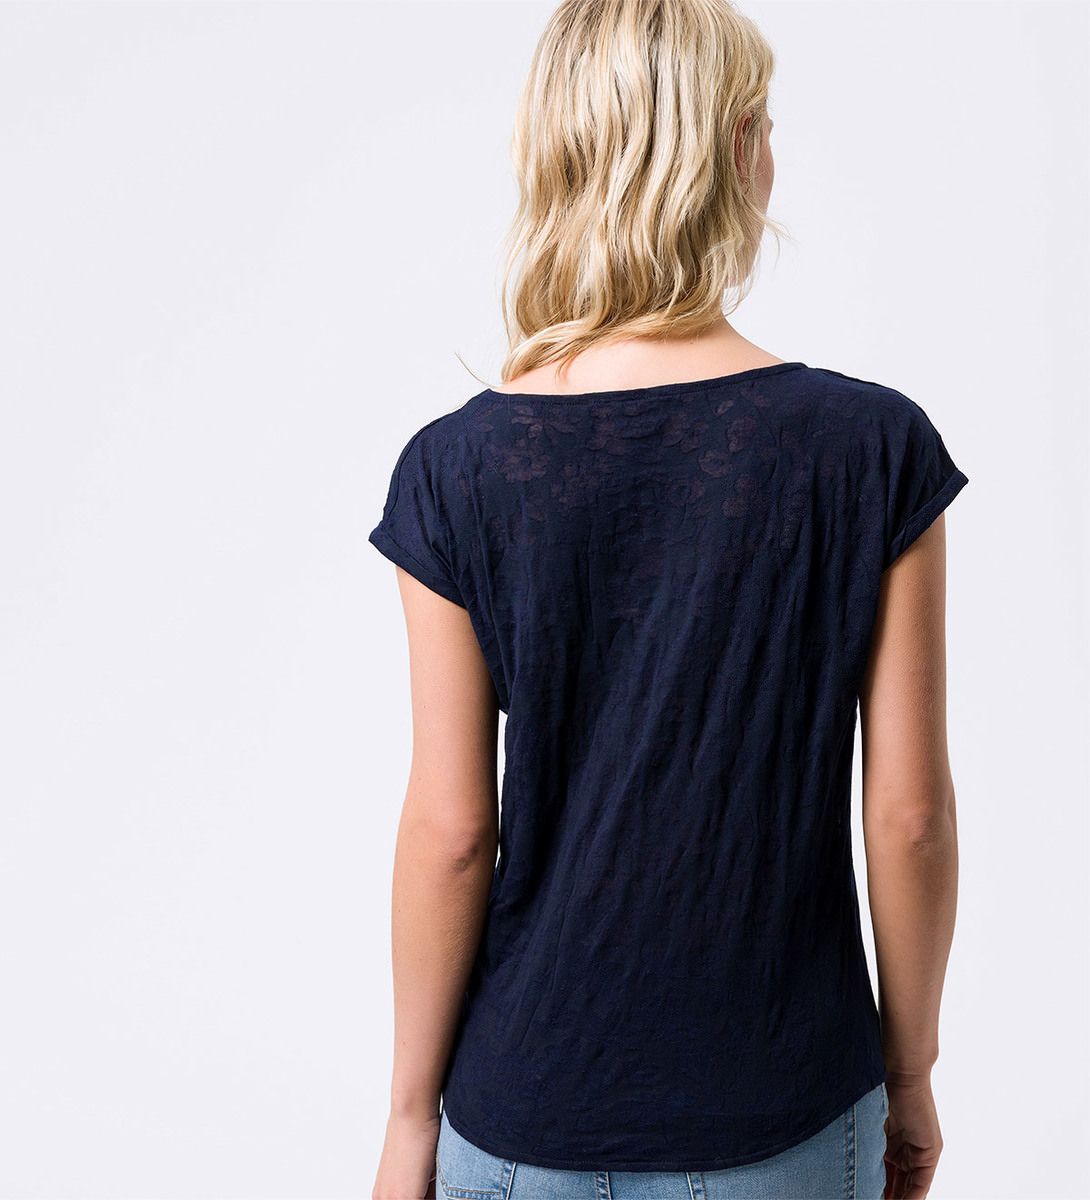 T-Shirt mit Ausbrennermuster in blue black